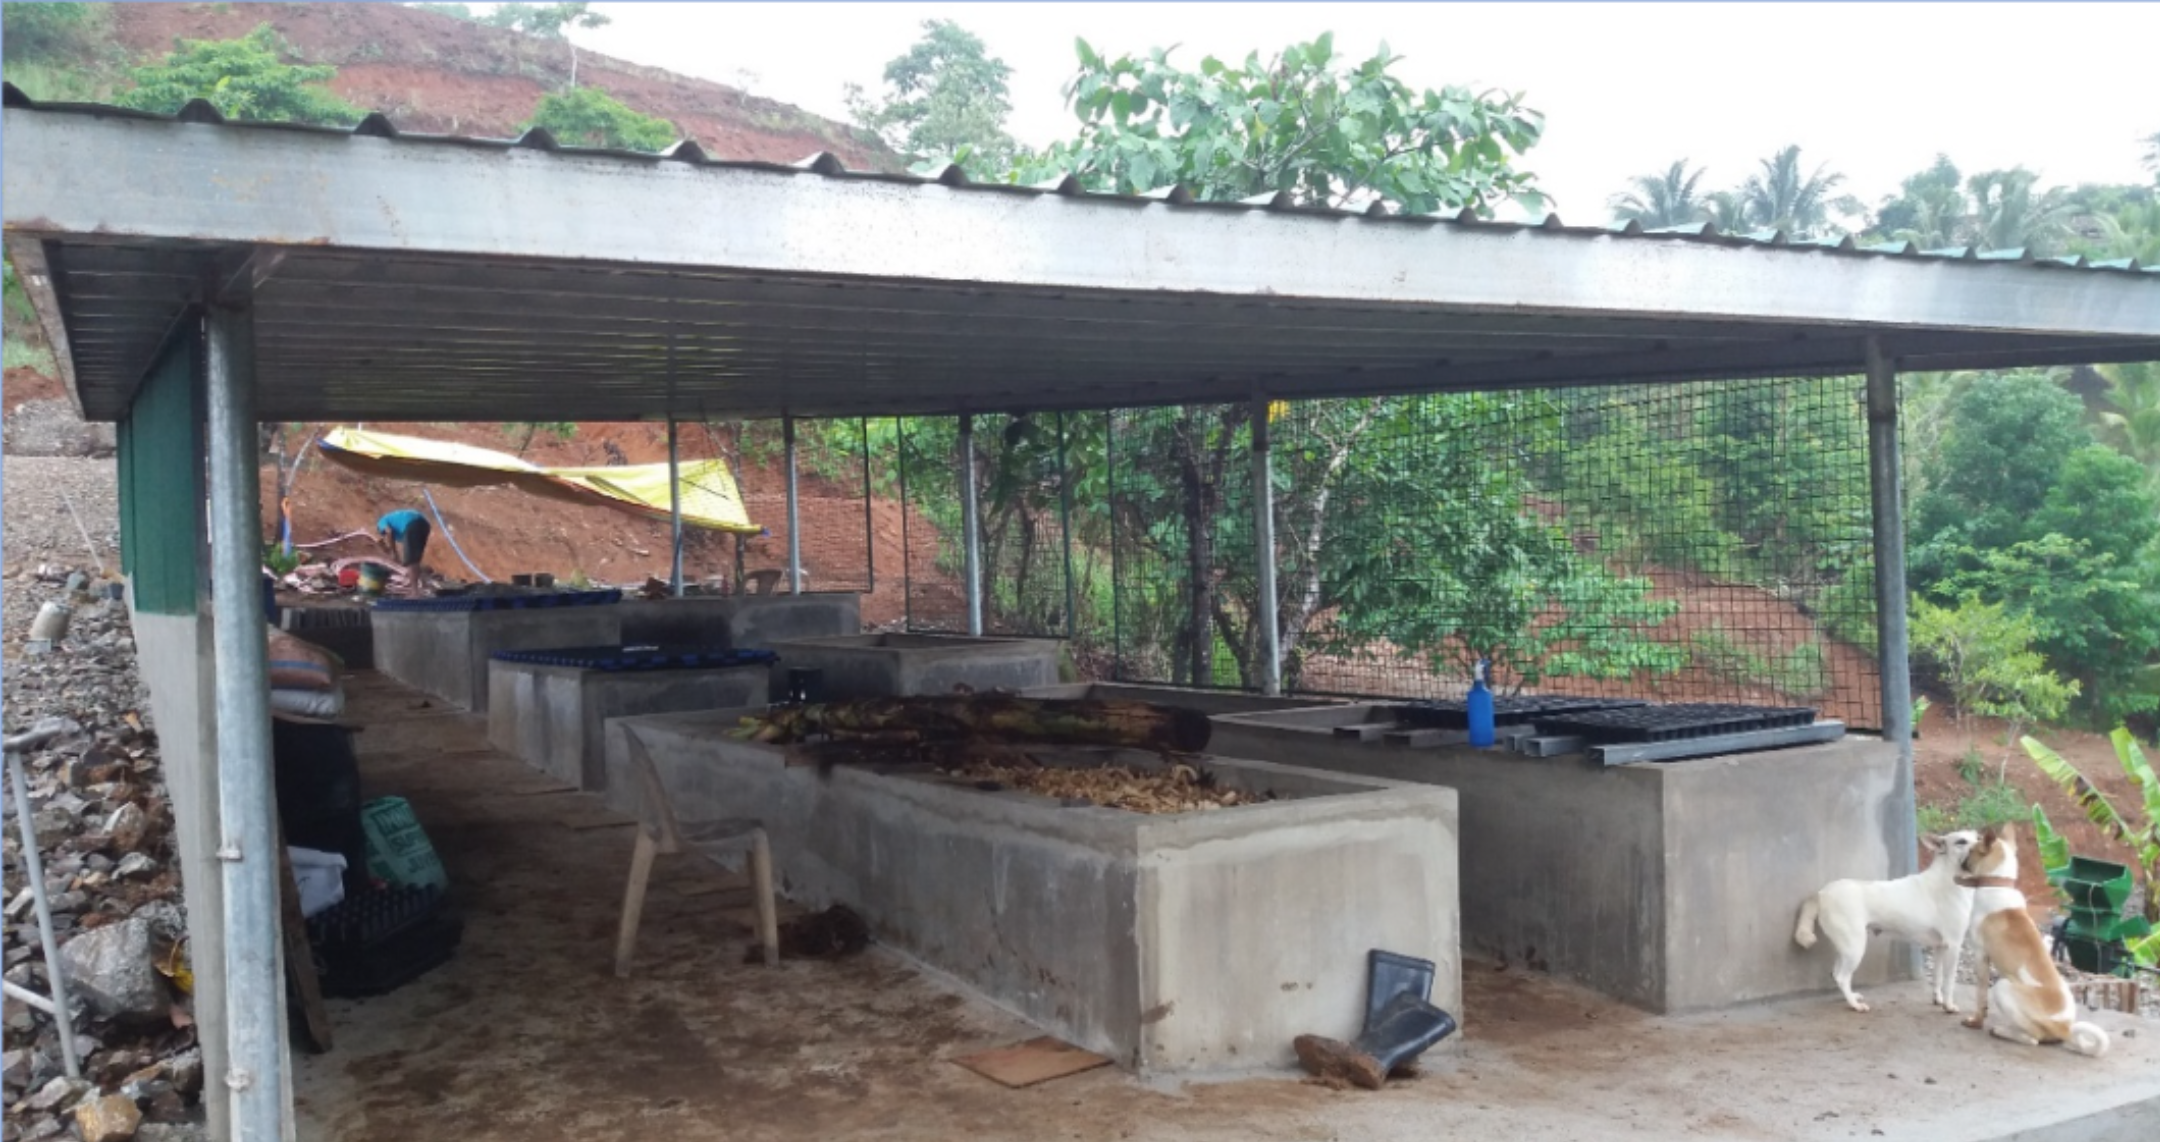 Vermi House for organic fertilizer